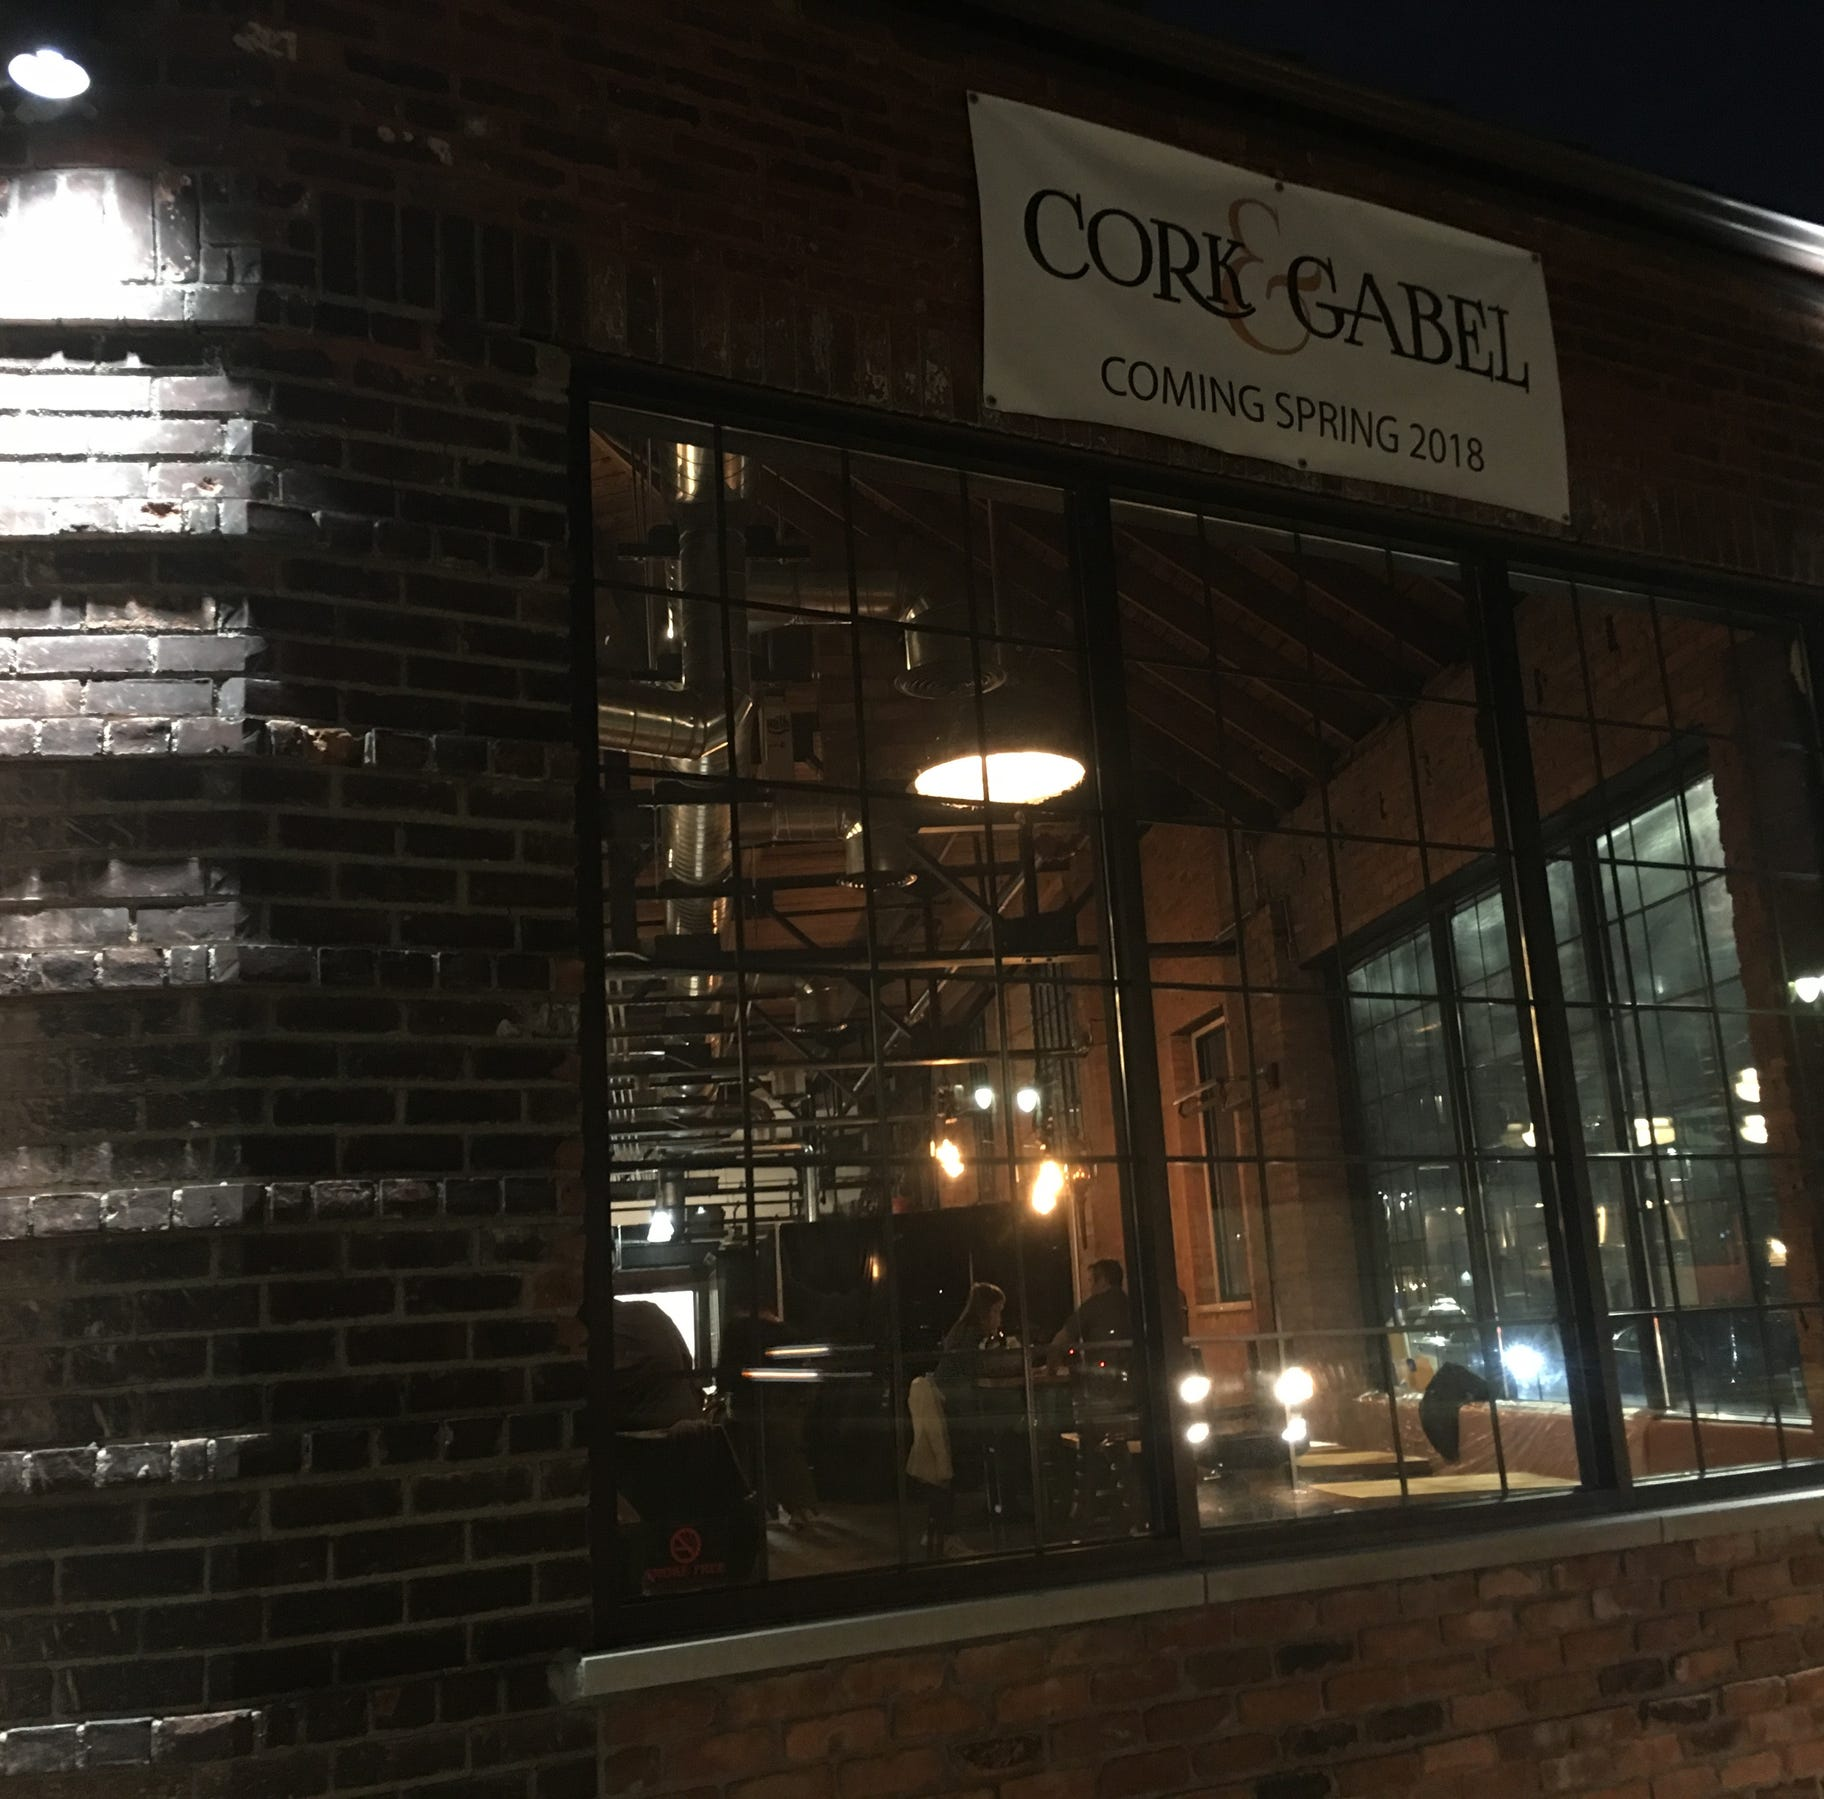 Corktown's Cork & Gabel will serve German, Irish and Italian fare